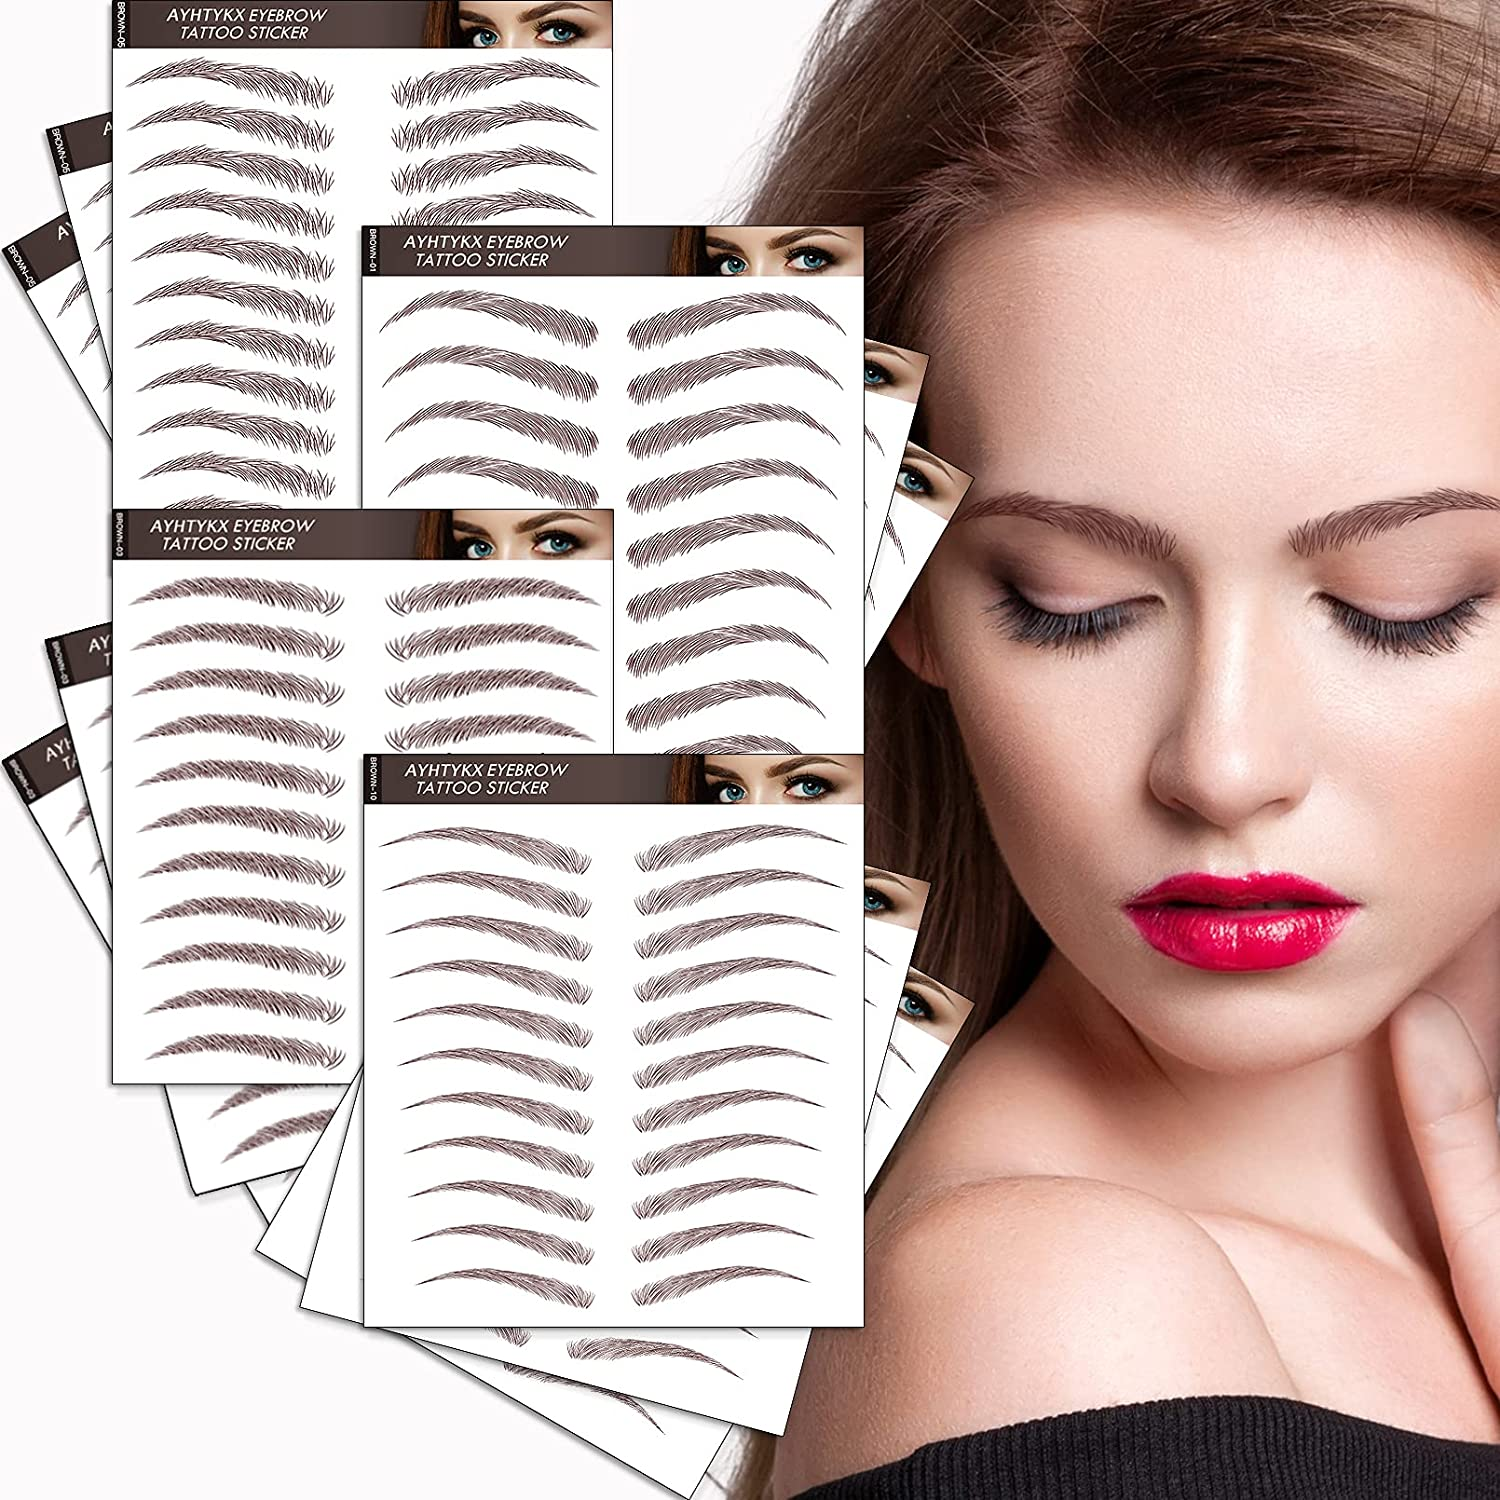 Eyebrows Tattoos 132 Super special price Pairs for Women Fake Ey Charlotte Mall Realistic 4D Tattoo